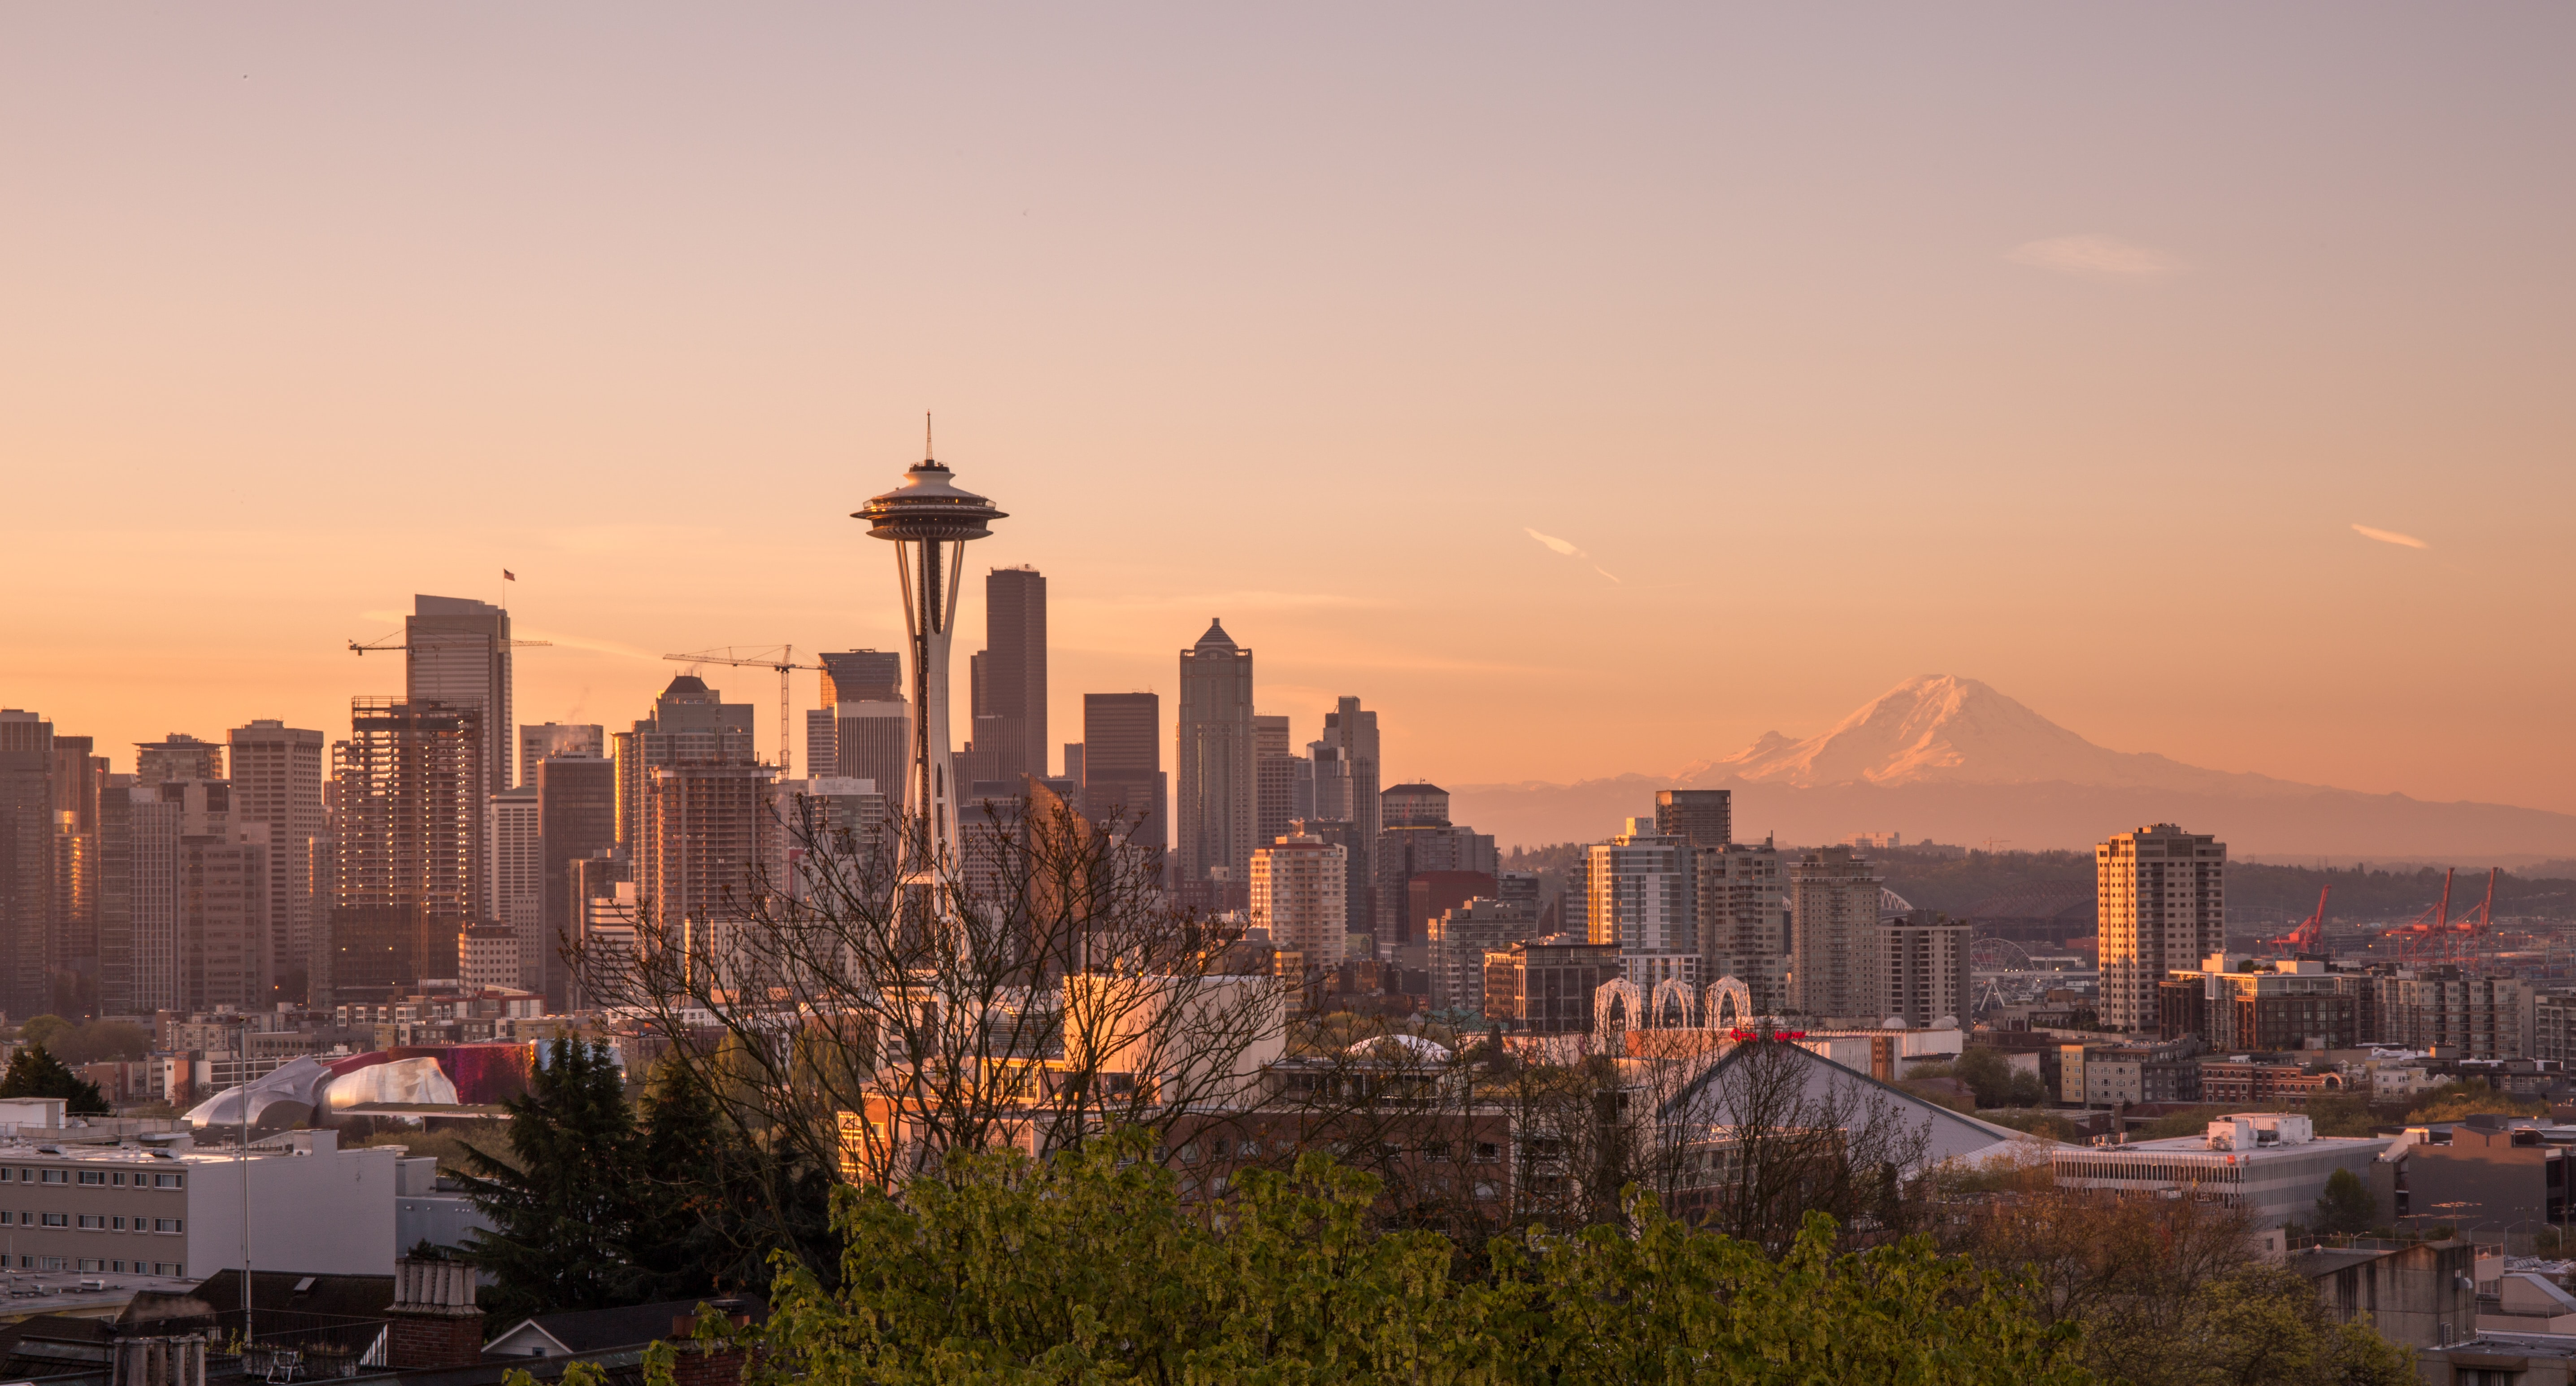 The skyline of Seattle with a view on a tall mountain on the horizon